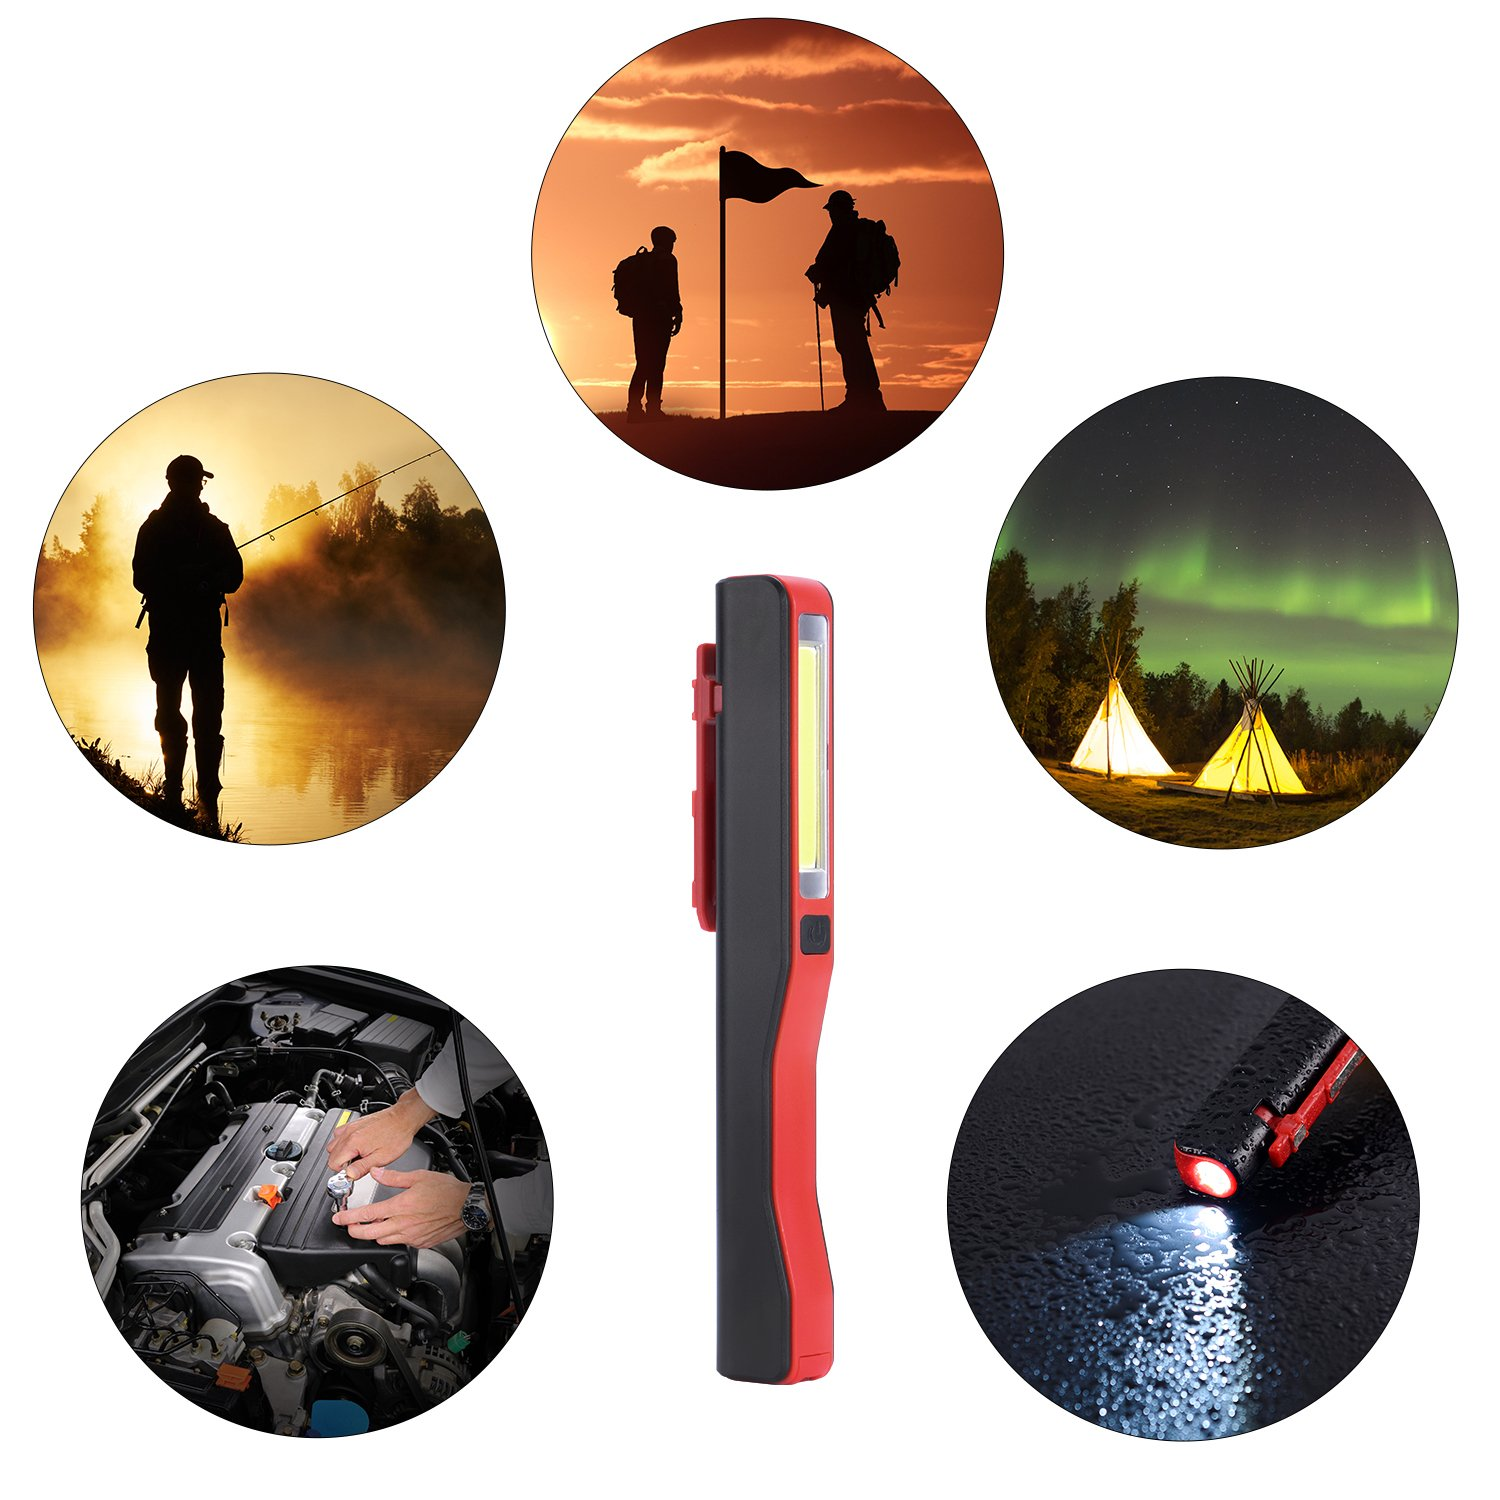 COB LED Work Light, Rechargeable Mechanic Inspection Lamp Worklight Portable Hand Pocket Pen Flashlight Flood Beam with Rotating Magnetic Strip Clip for Household, Workshop, Camping, Car Repairing by Ausein (Image #6)